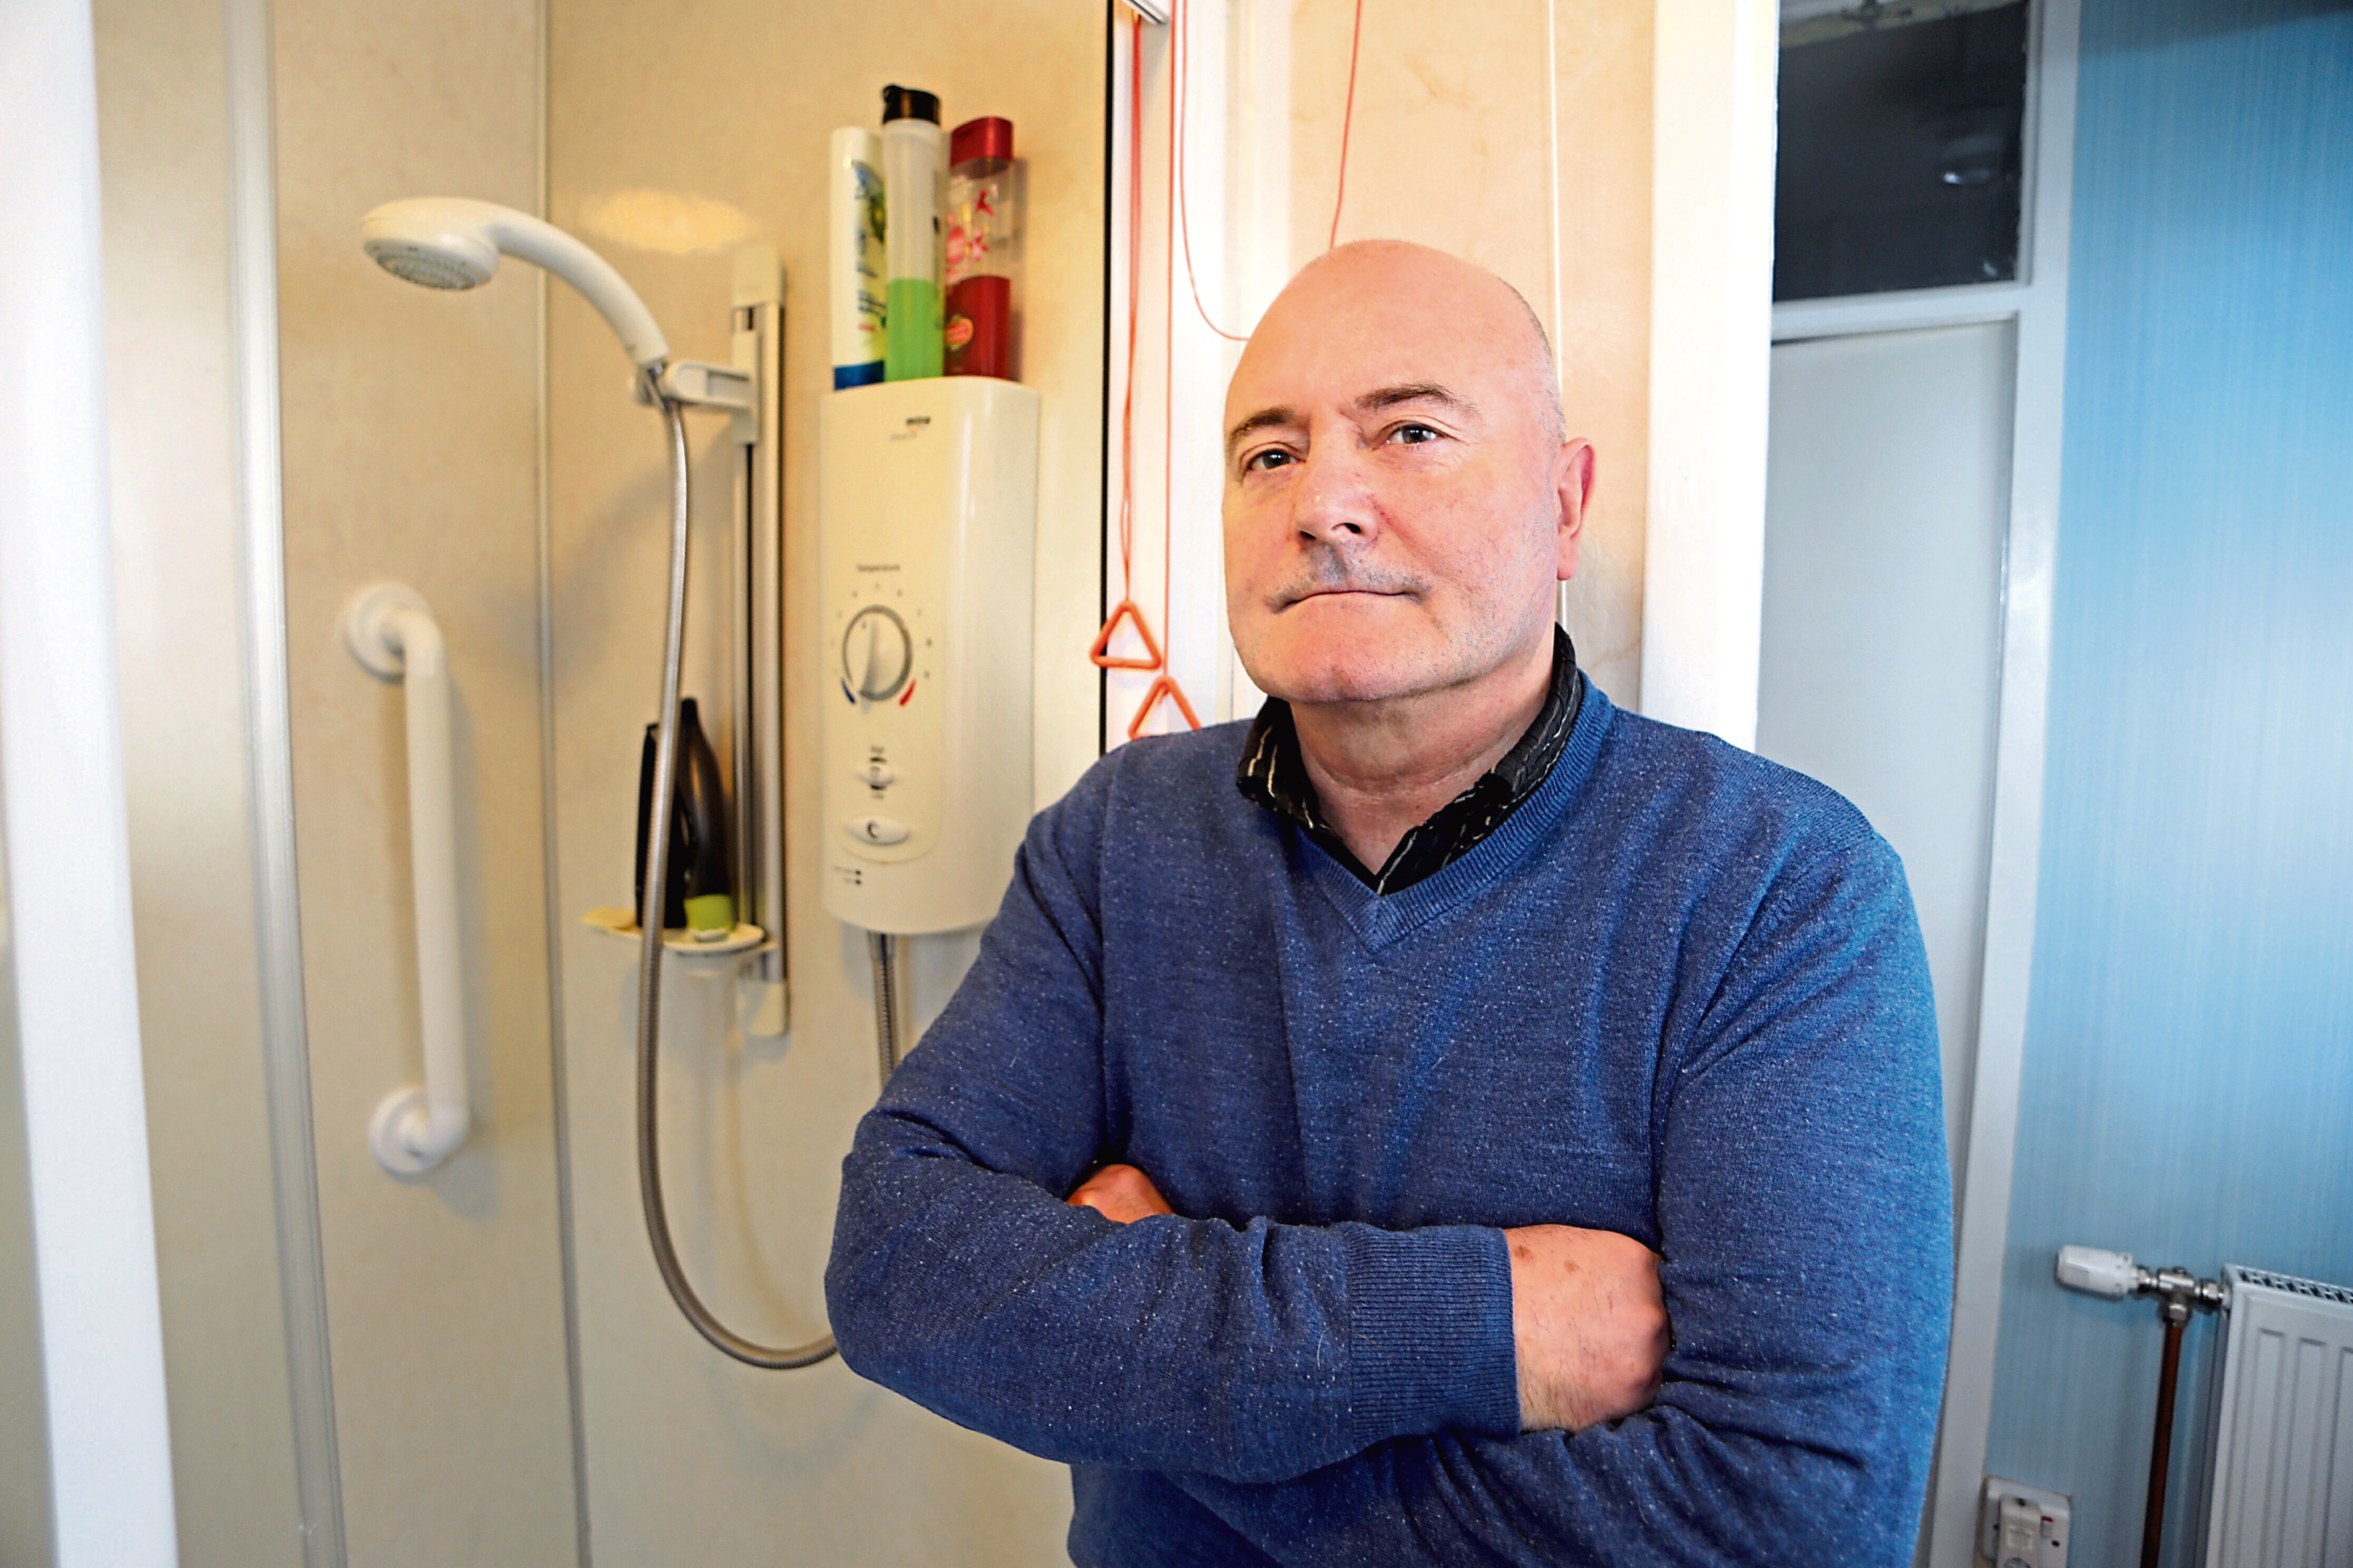 Kenny McPherson is angry at having to pay for a walk-in shower and red cord in his sheltered housing